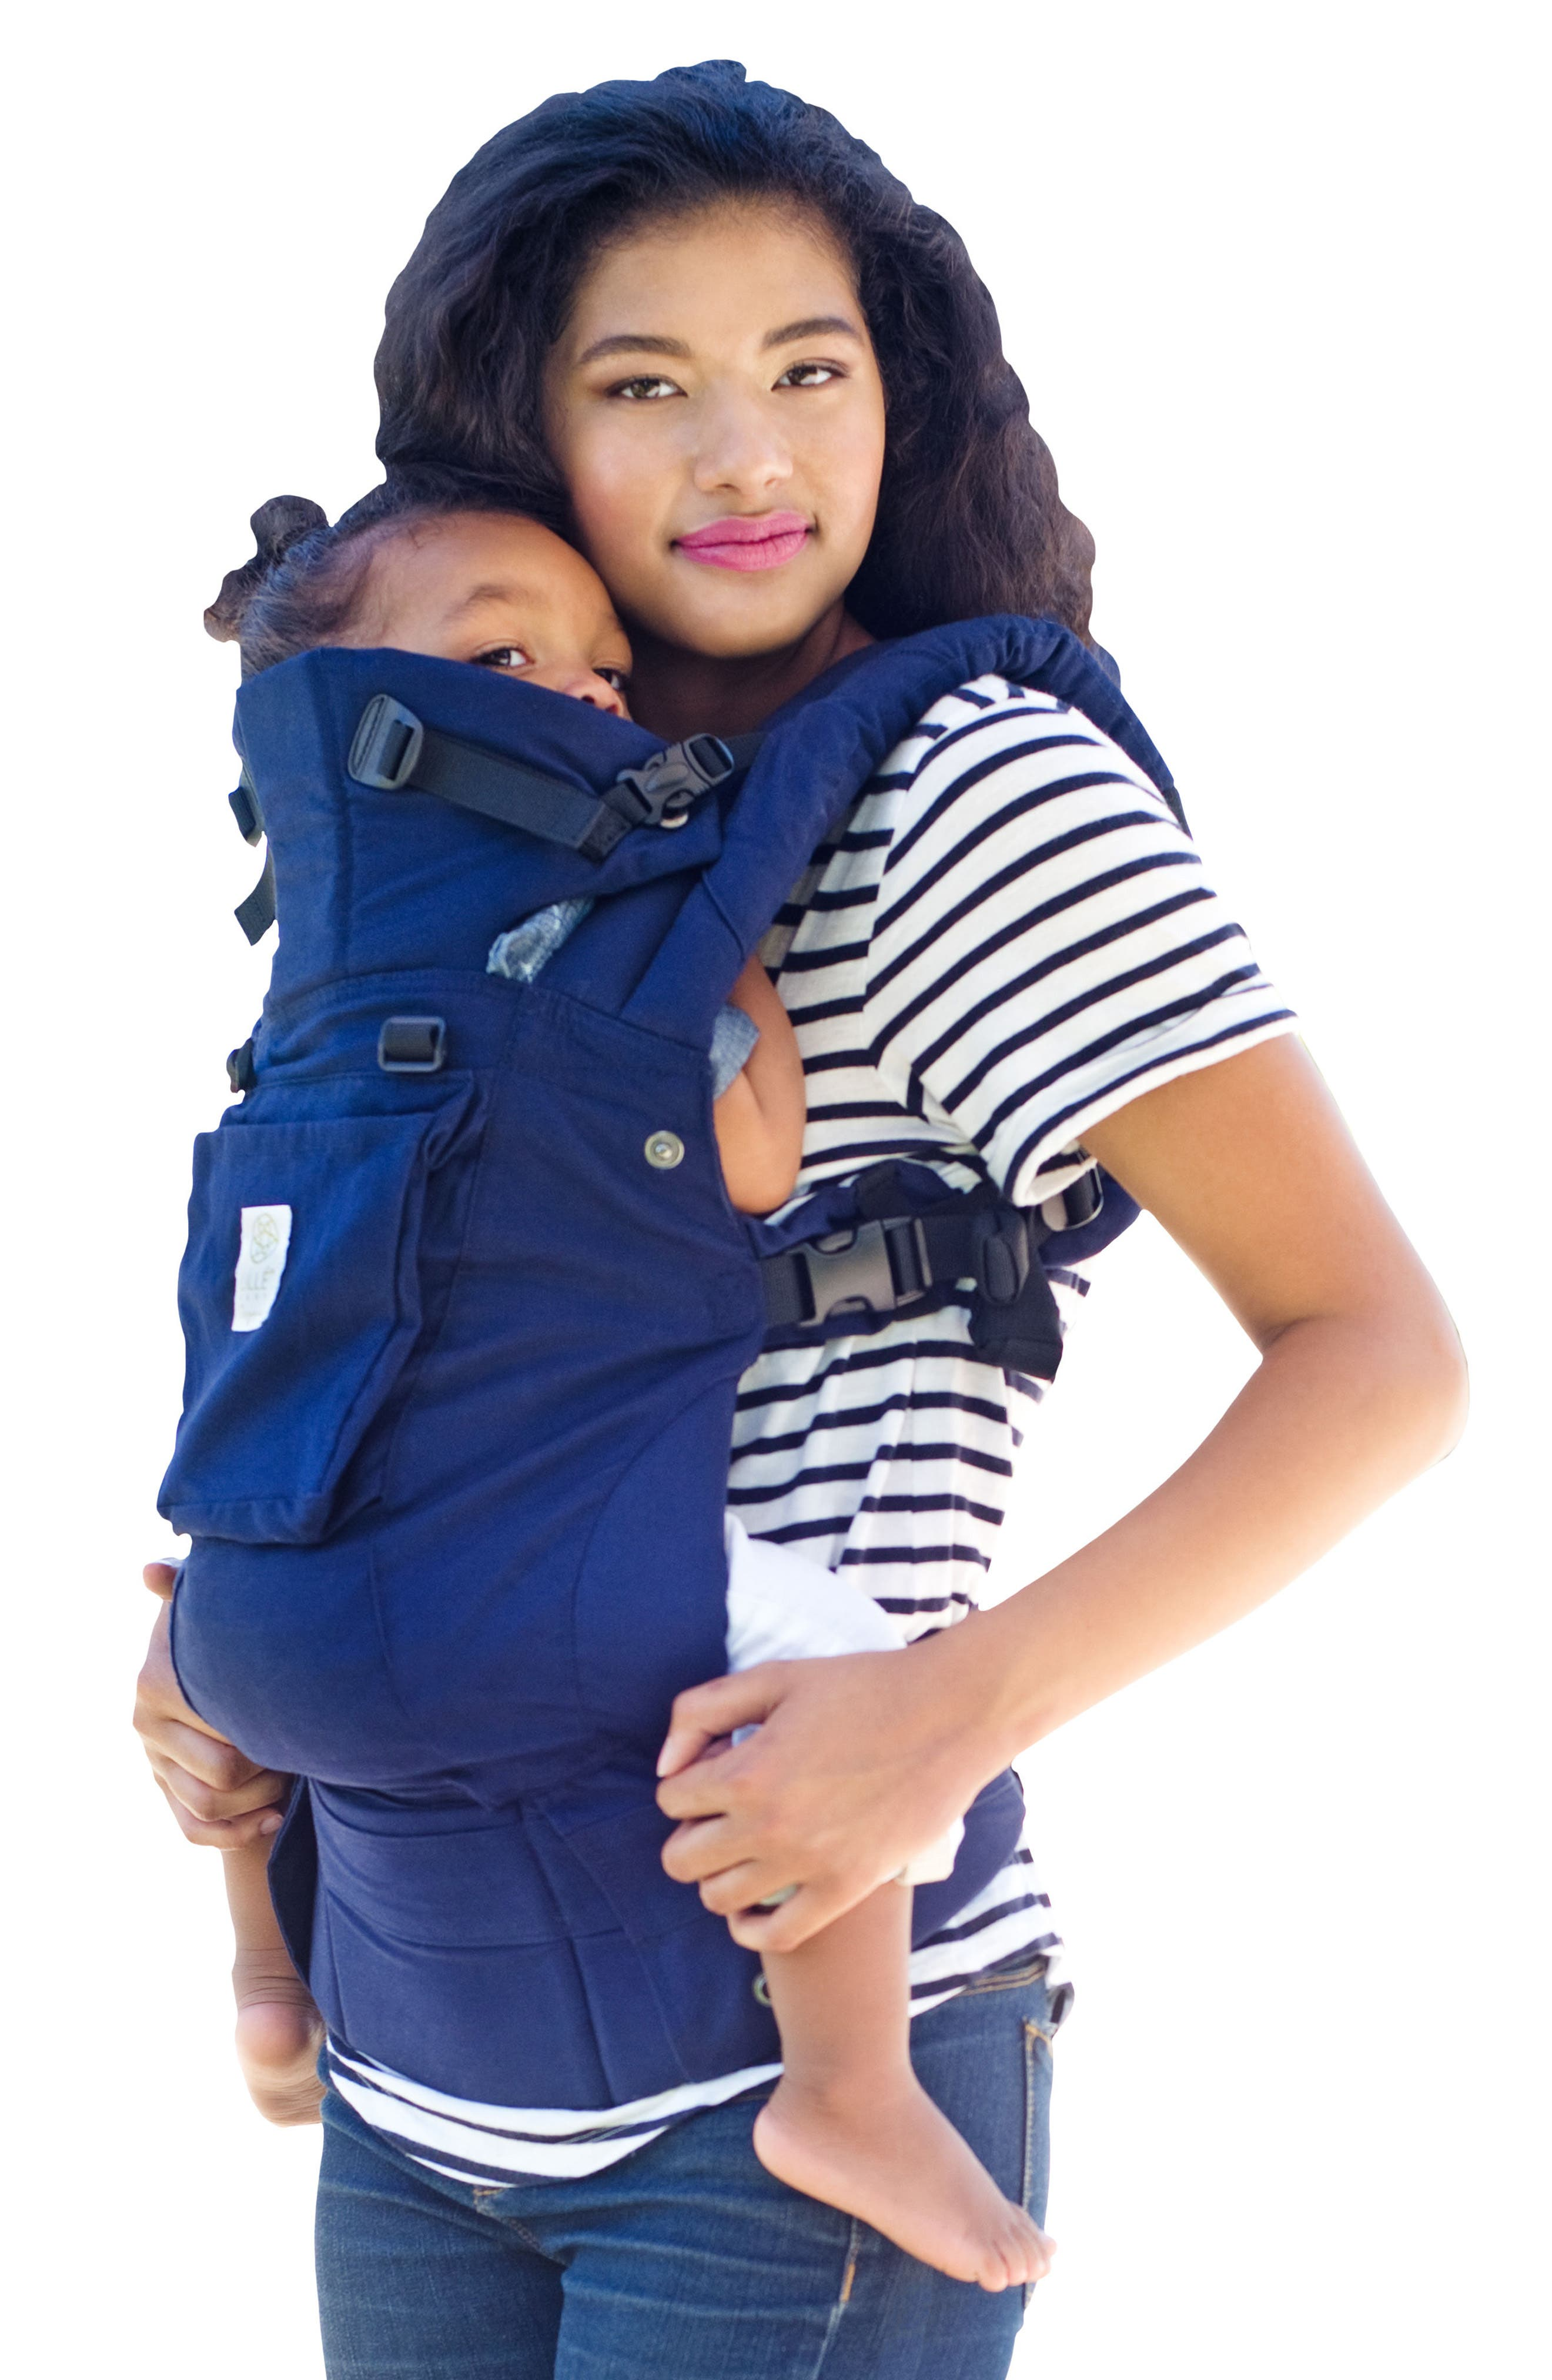 Infant Lillebaby Complete 6Position Organic Cotton Baby Carrier Size One Size  Blue